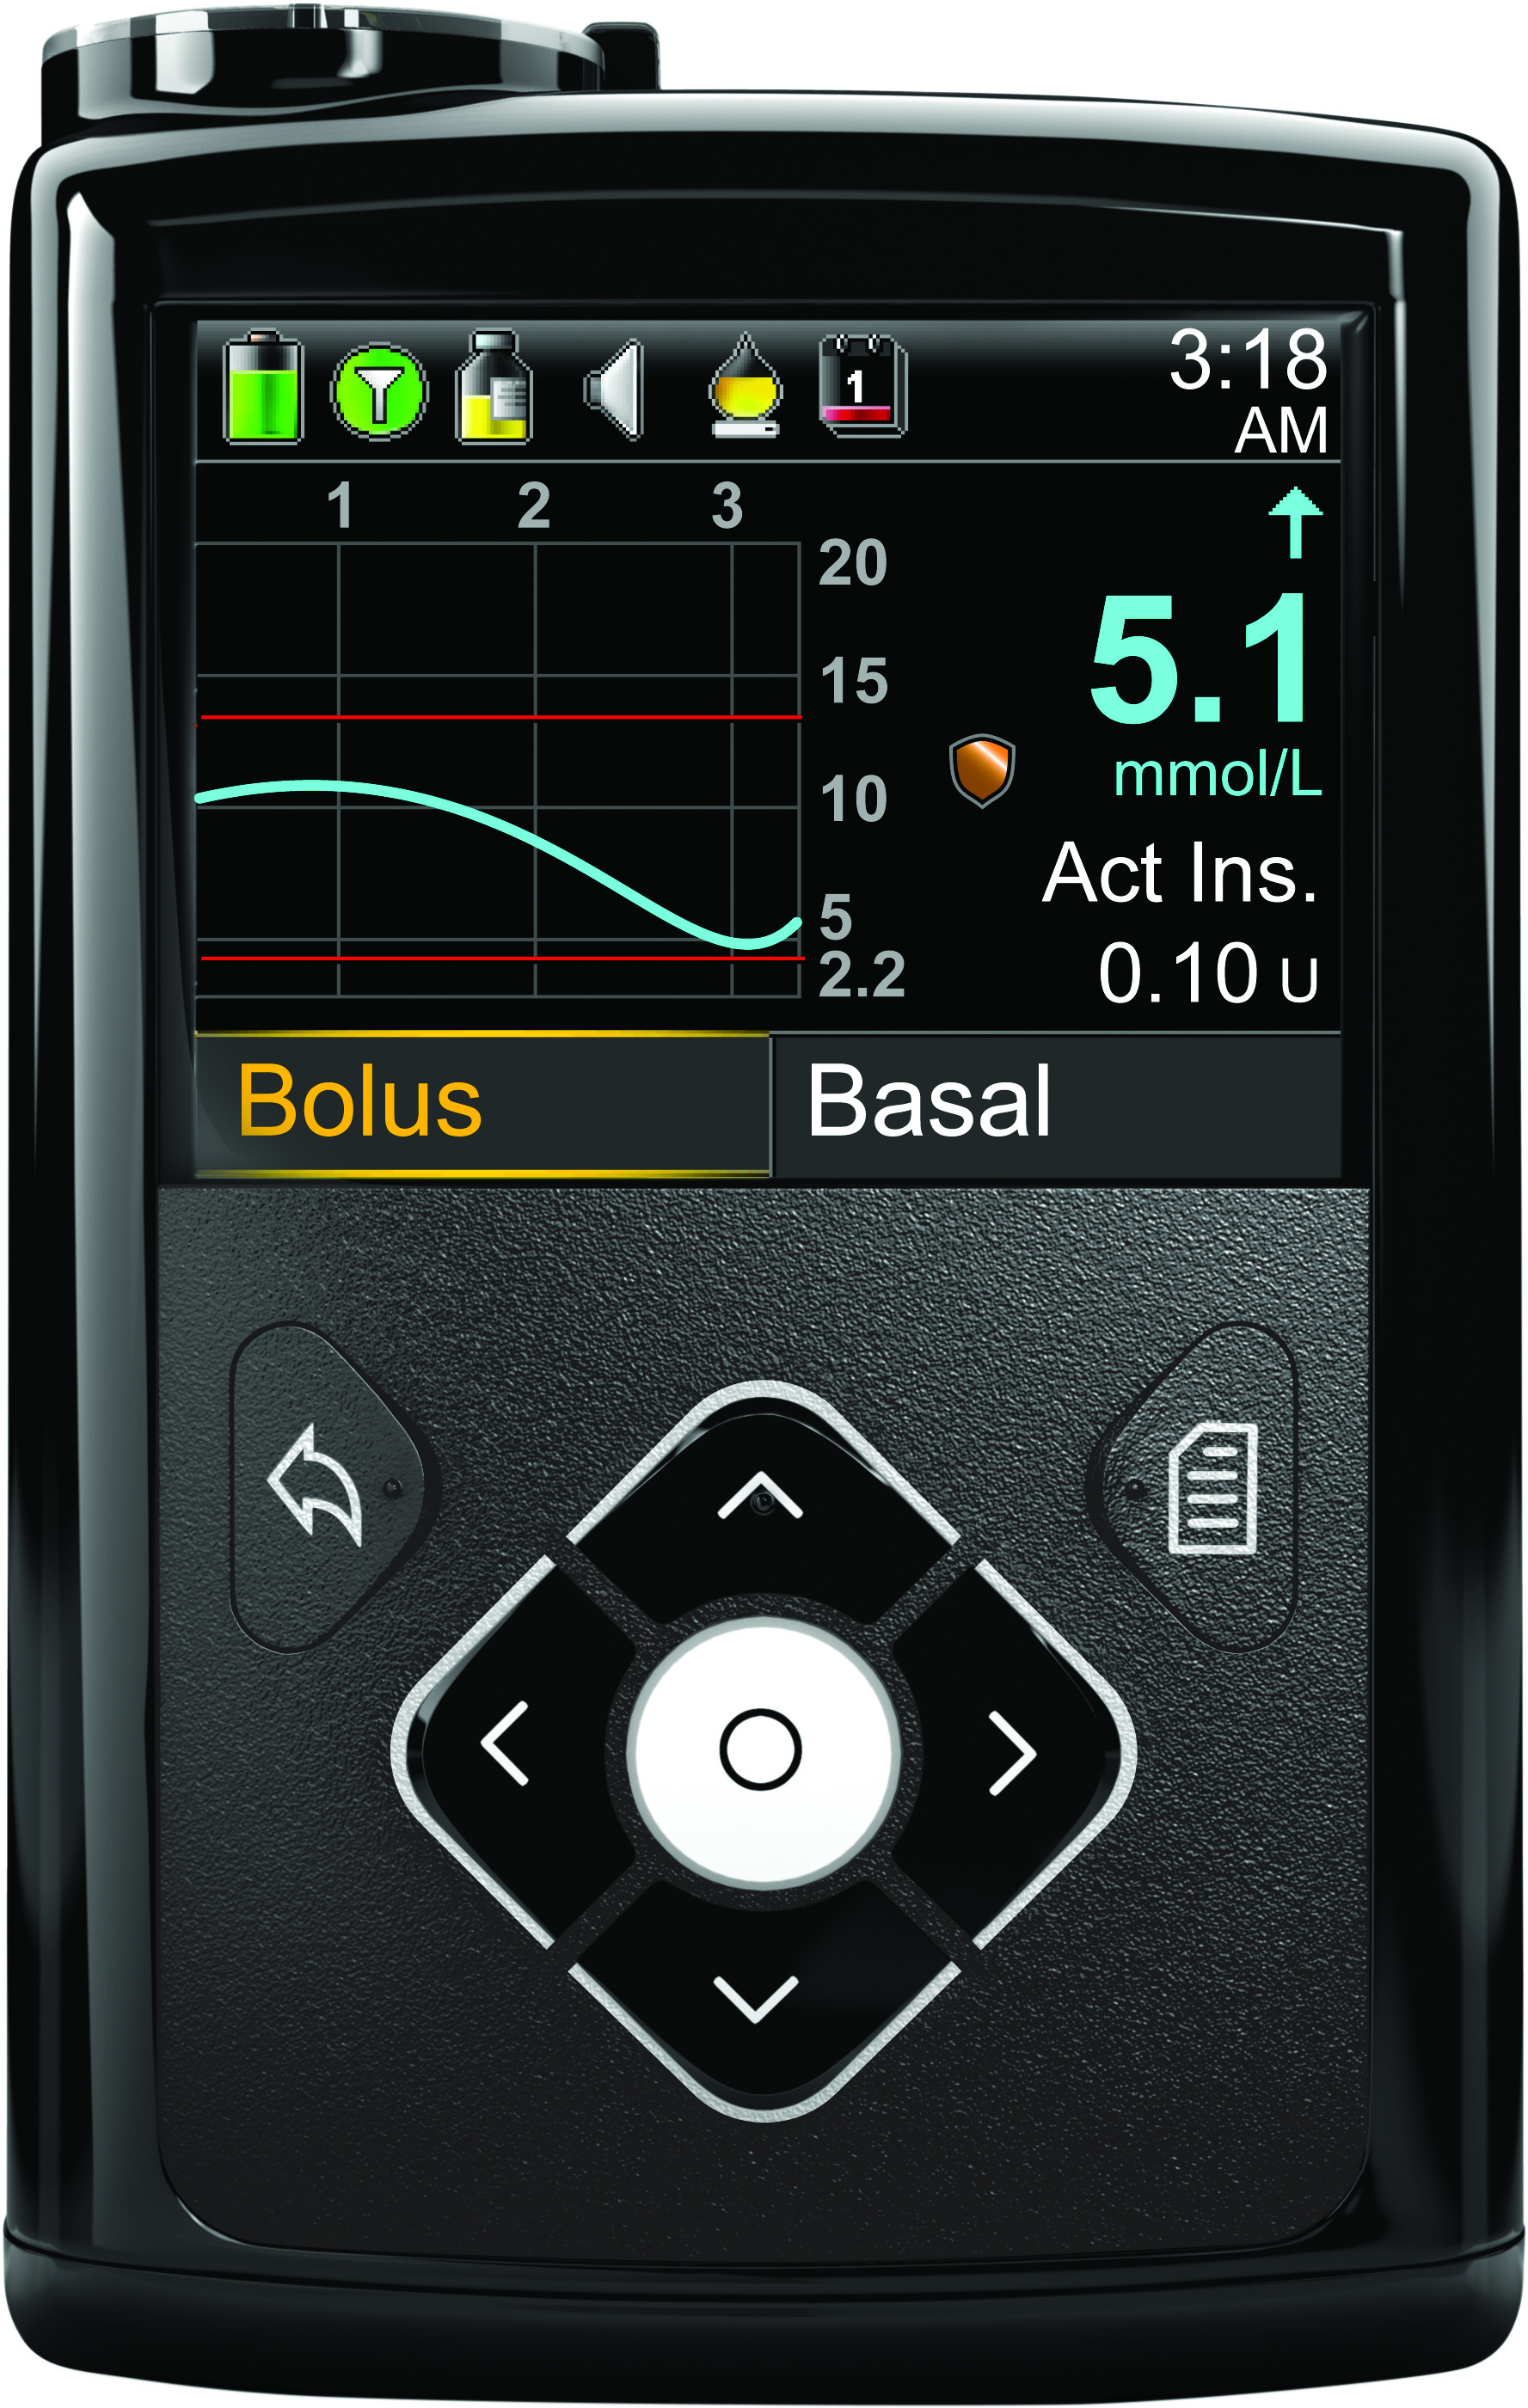 up close with medtronic u2019s new minimed 640g system in